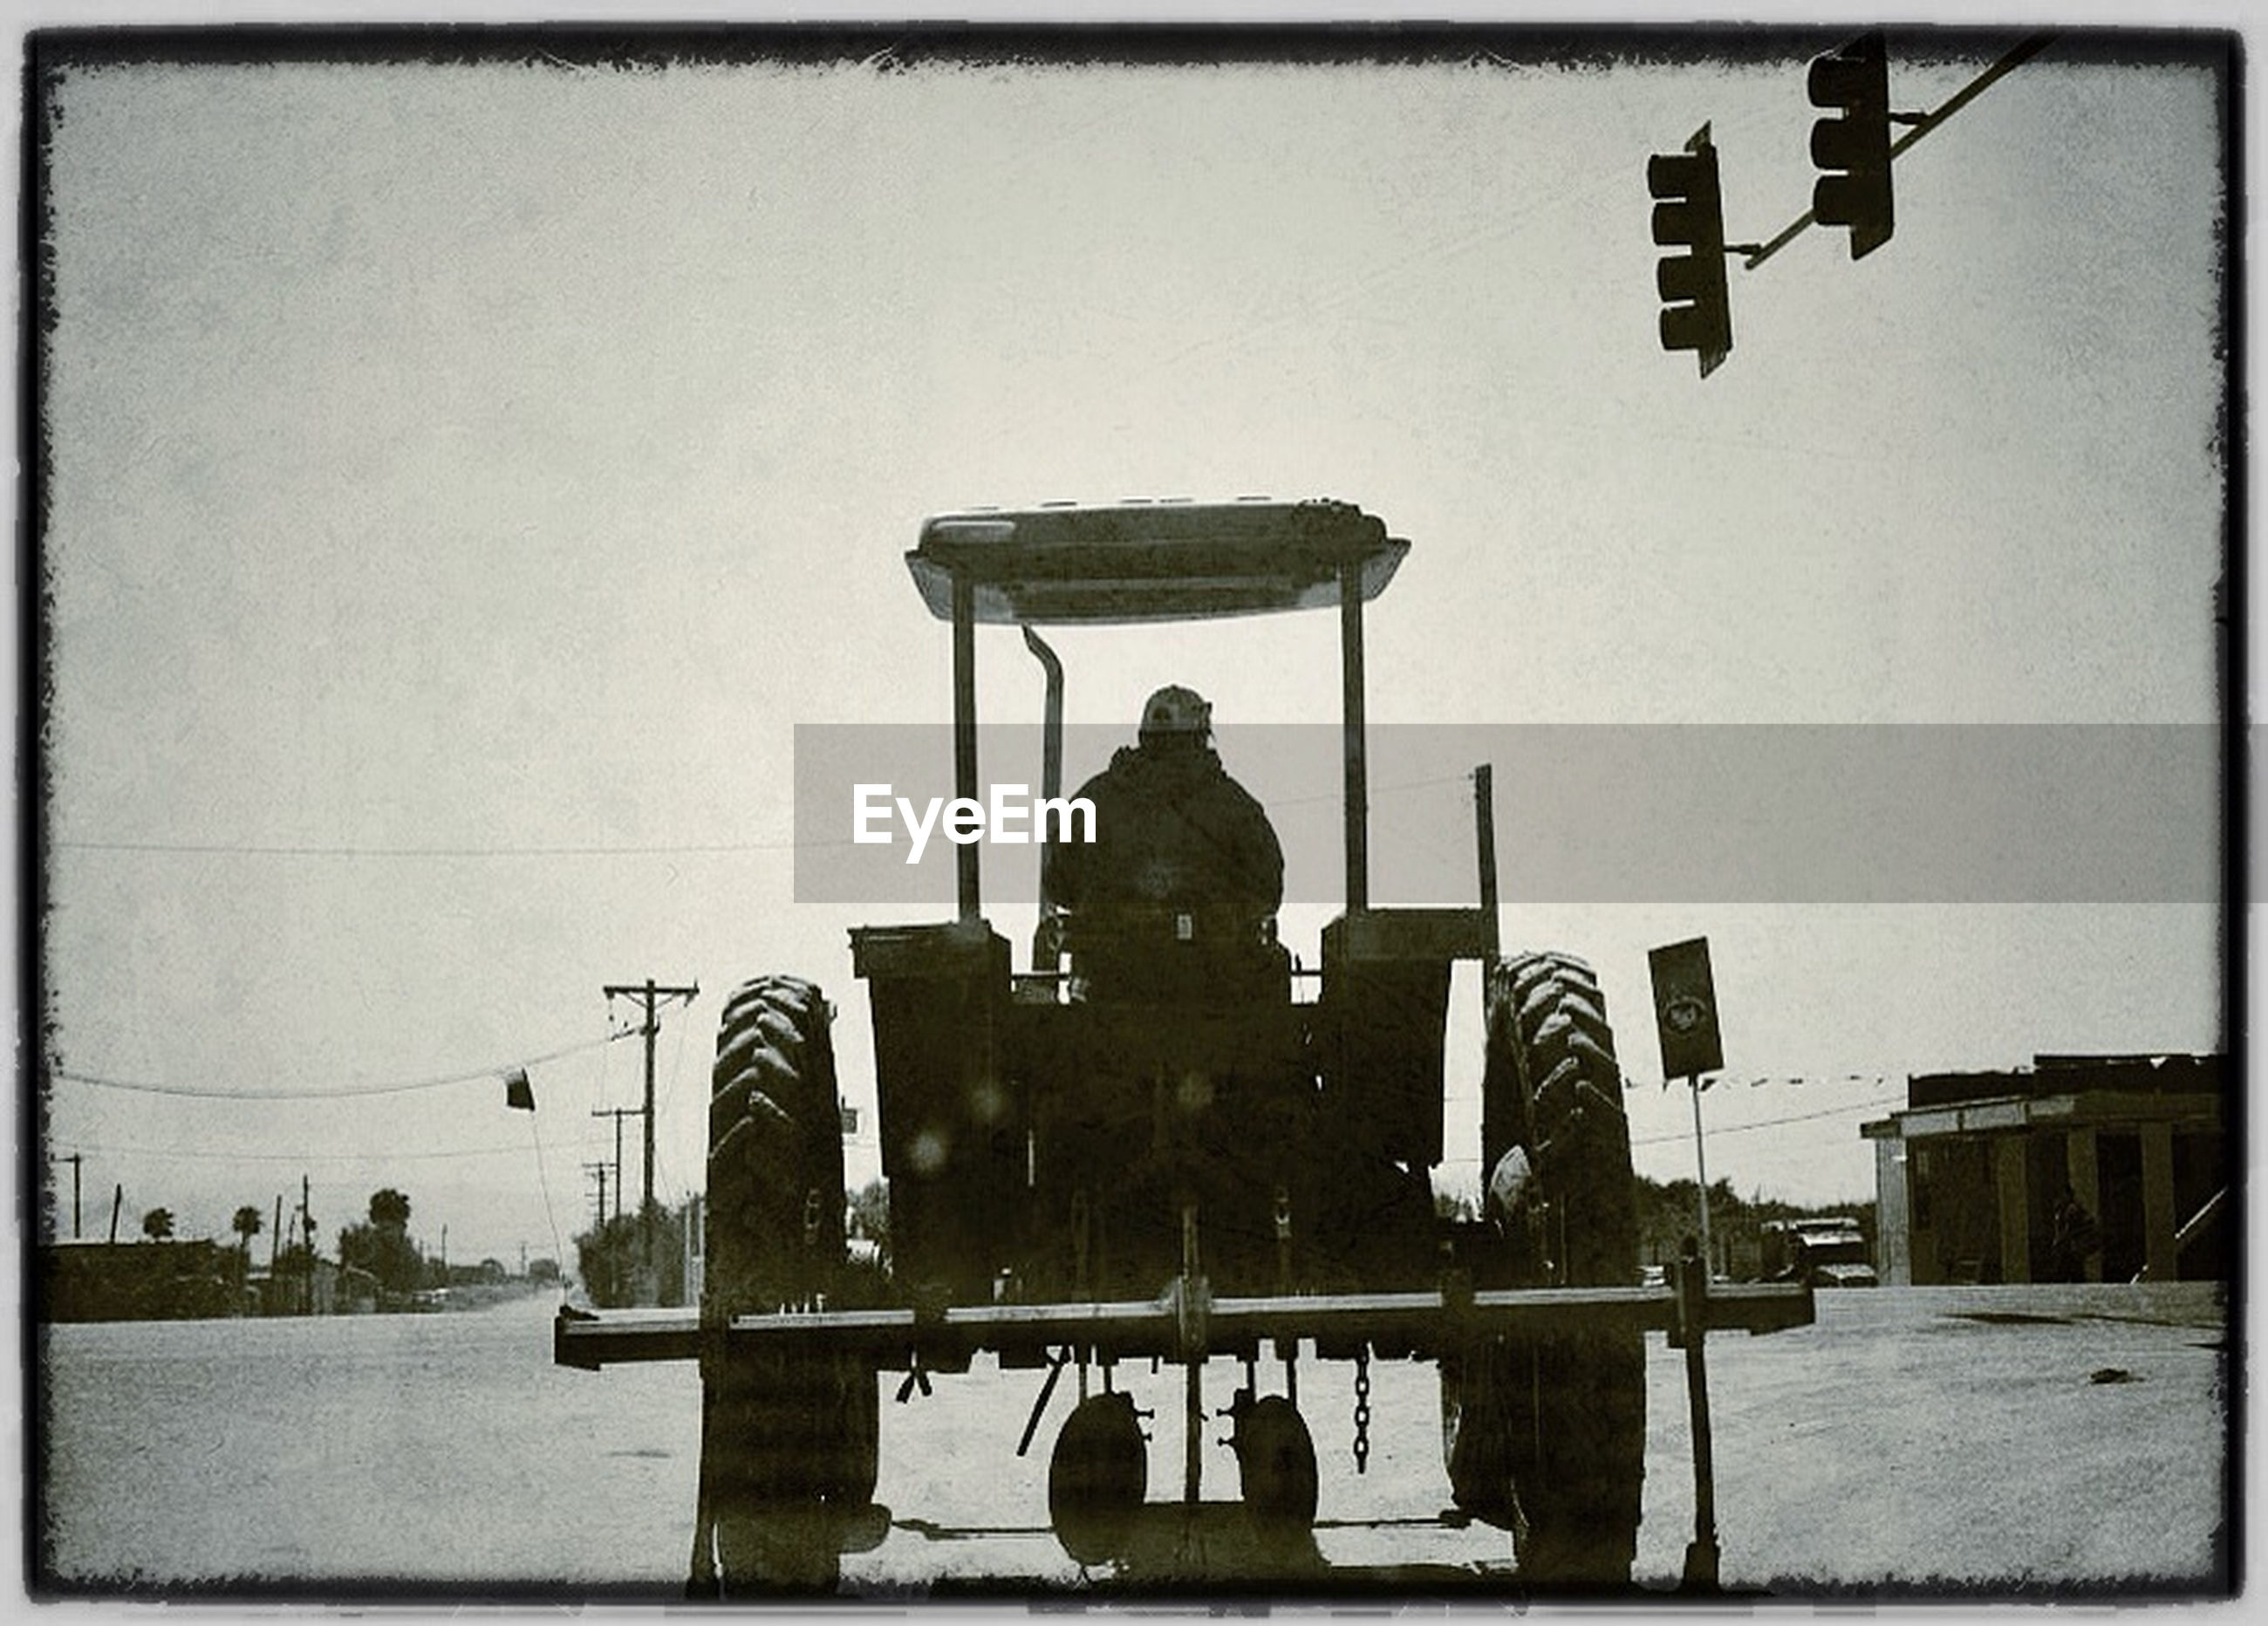 Rear view of man sitting on tractor against sky